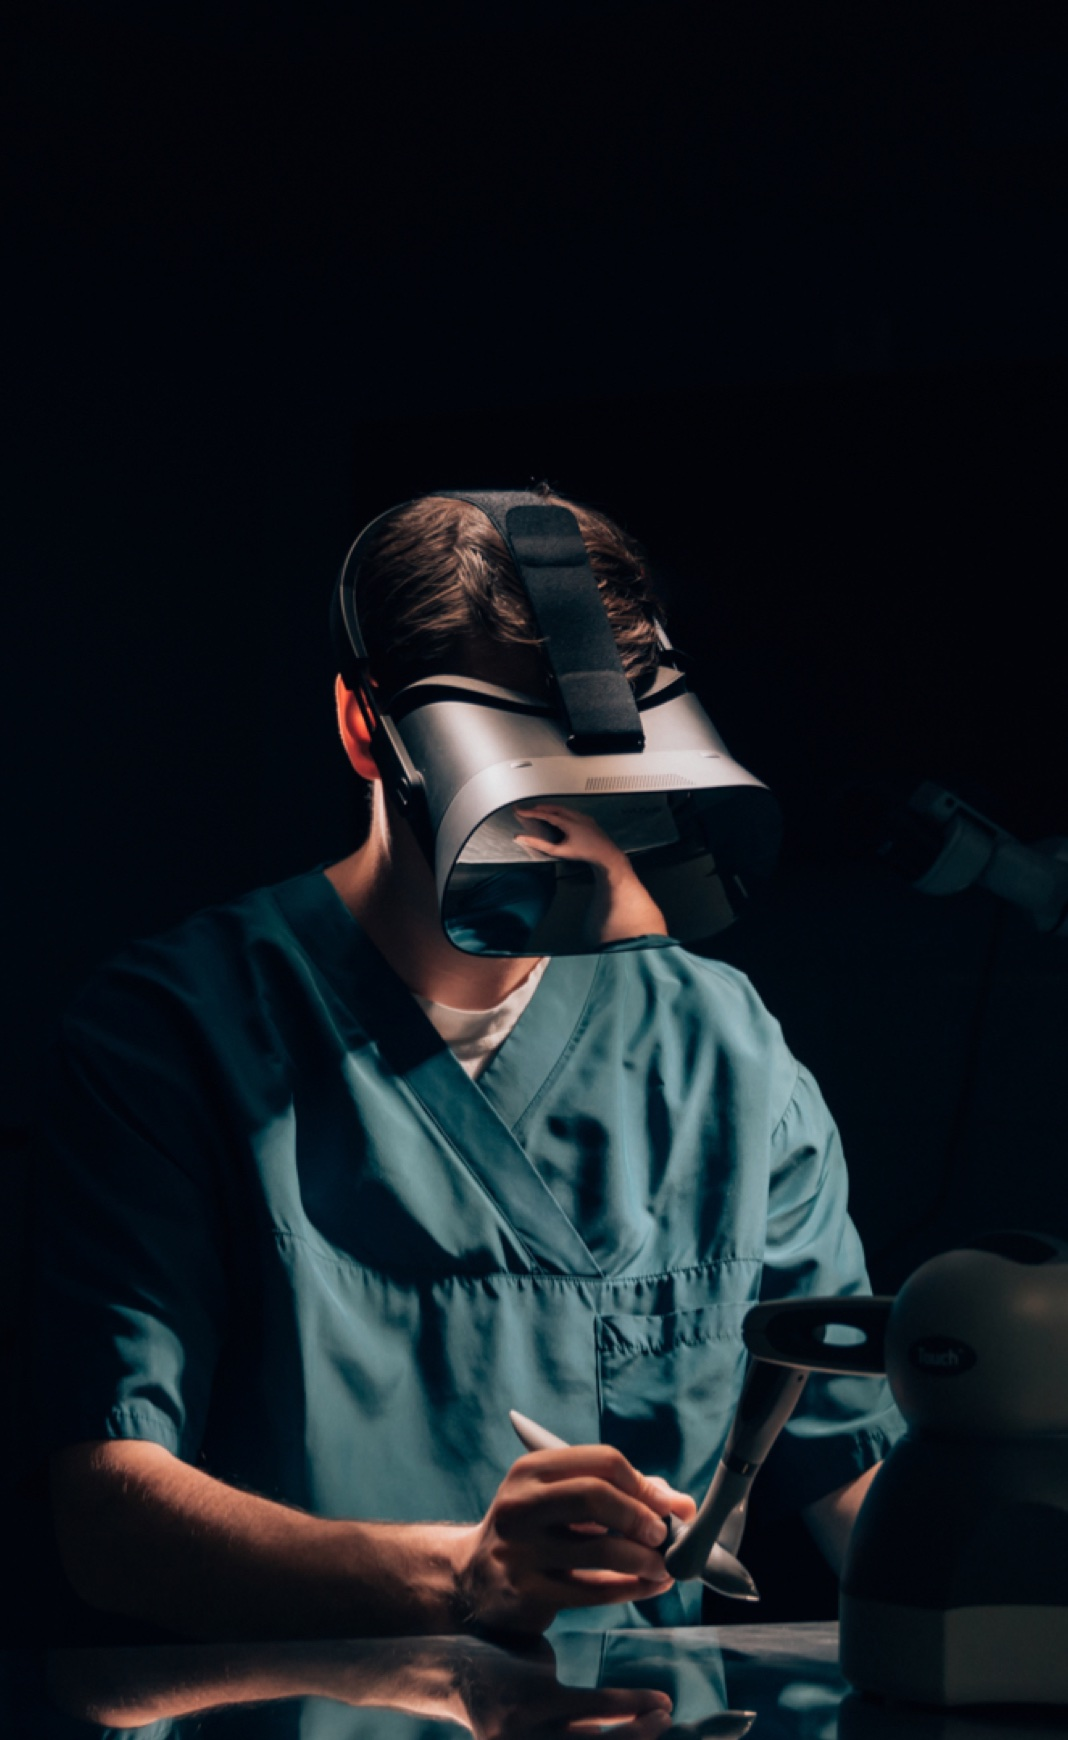 Examine medical images and prepare for operations using photorealistic 3D visualizations. Train medical professionals flexibly and scalably using Varjo's virtual and mixed reality headsets.